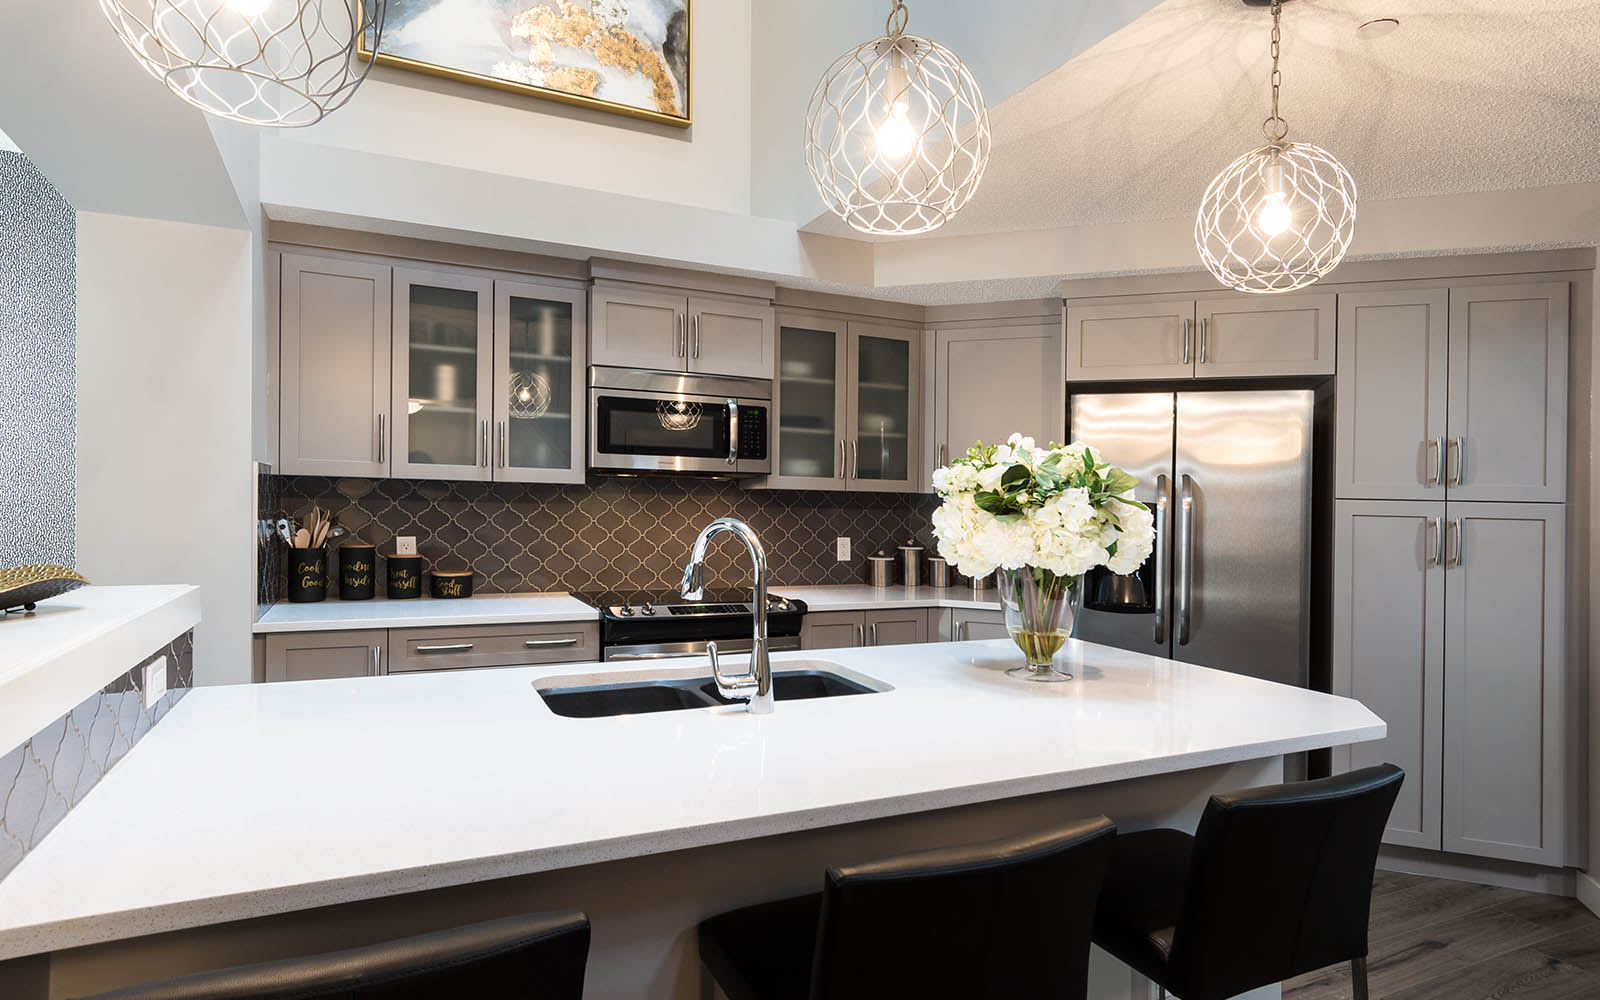 Kitchen2-belvedereiii-livingston-calgary-alberta